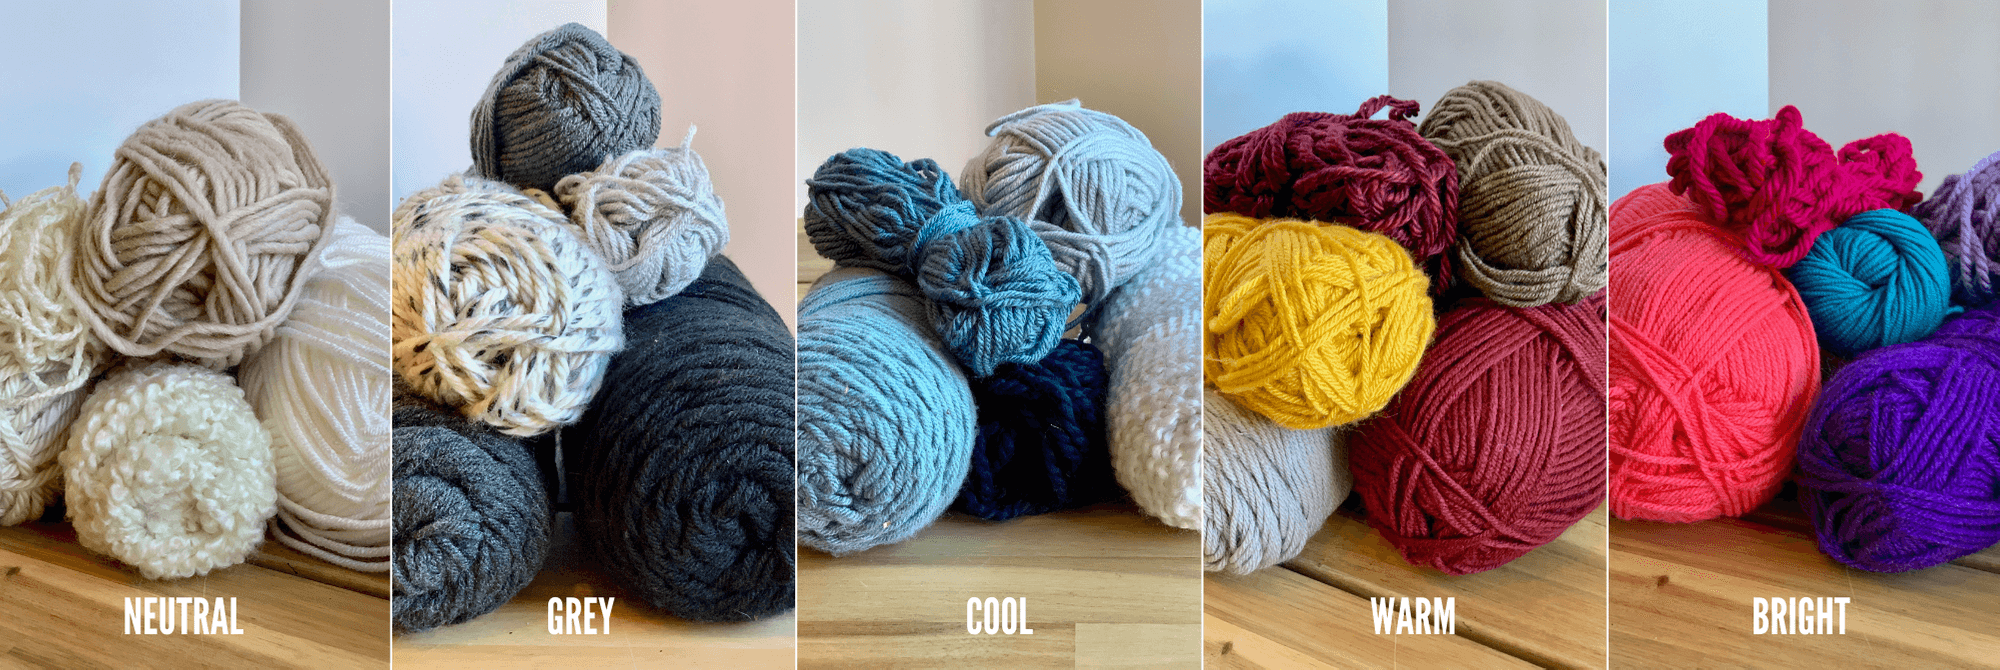 yarn wall hangings - color palettes - neutral-grey-cool-warm-bright